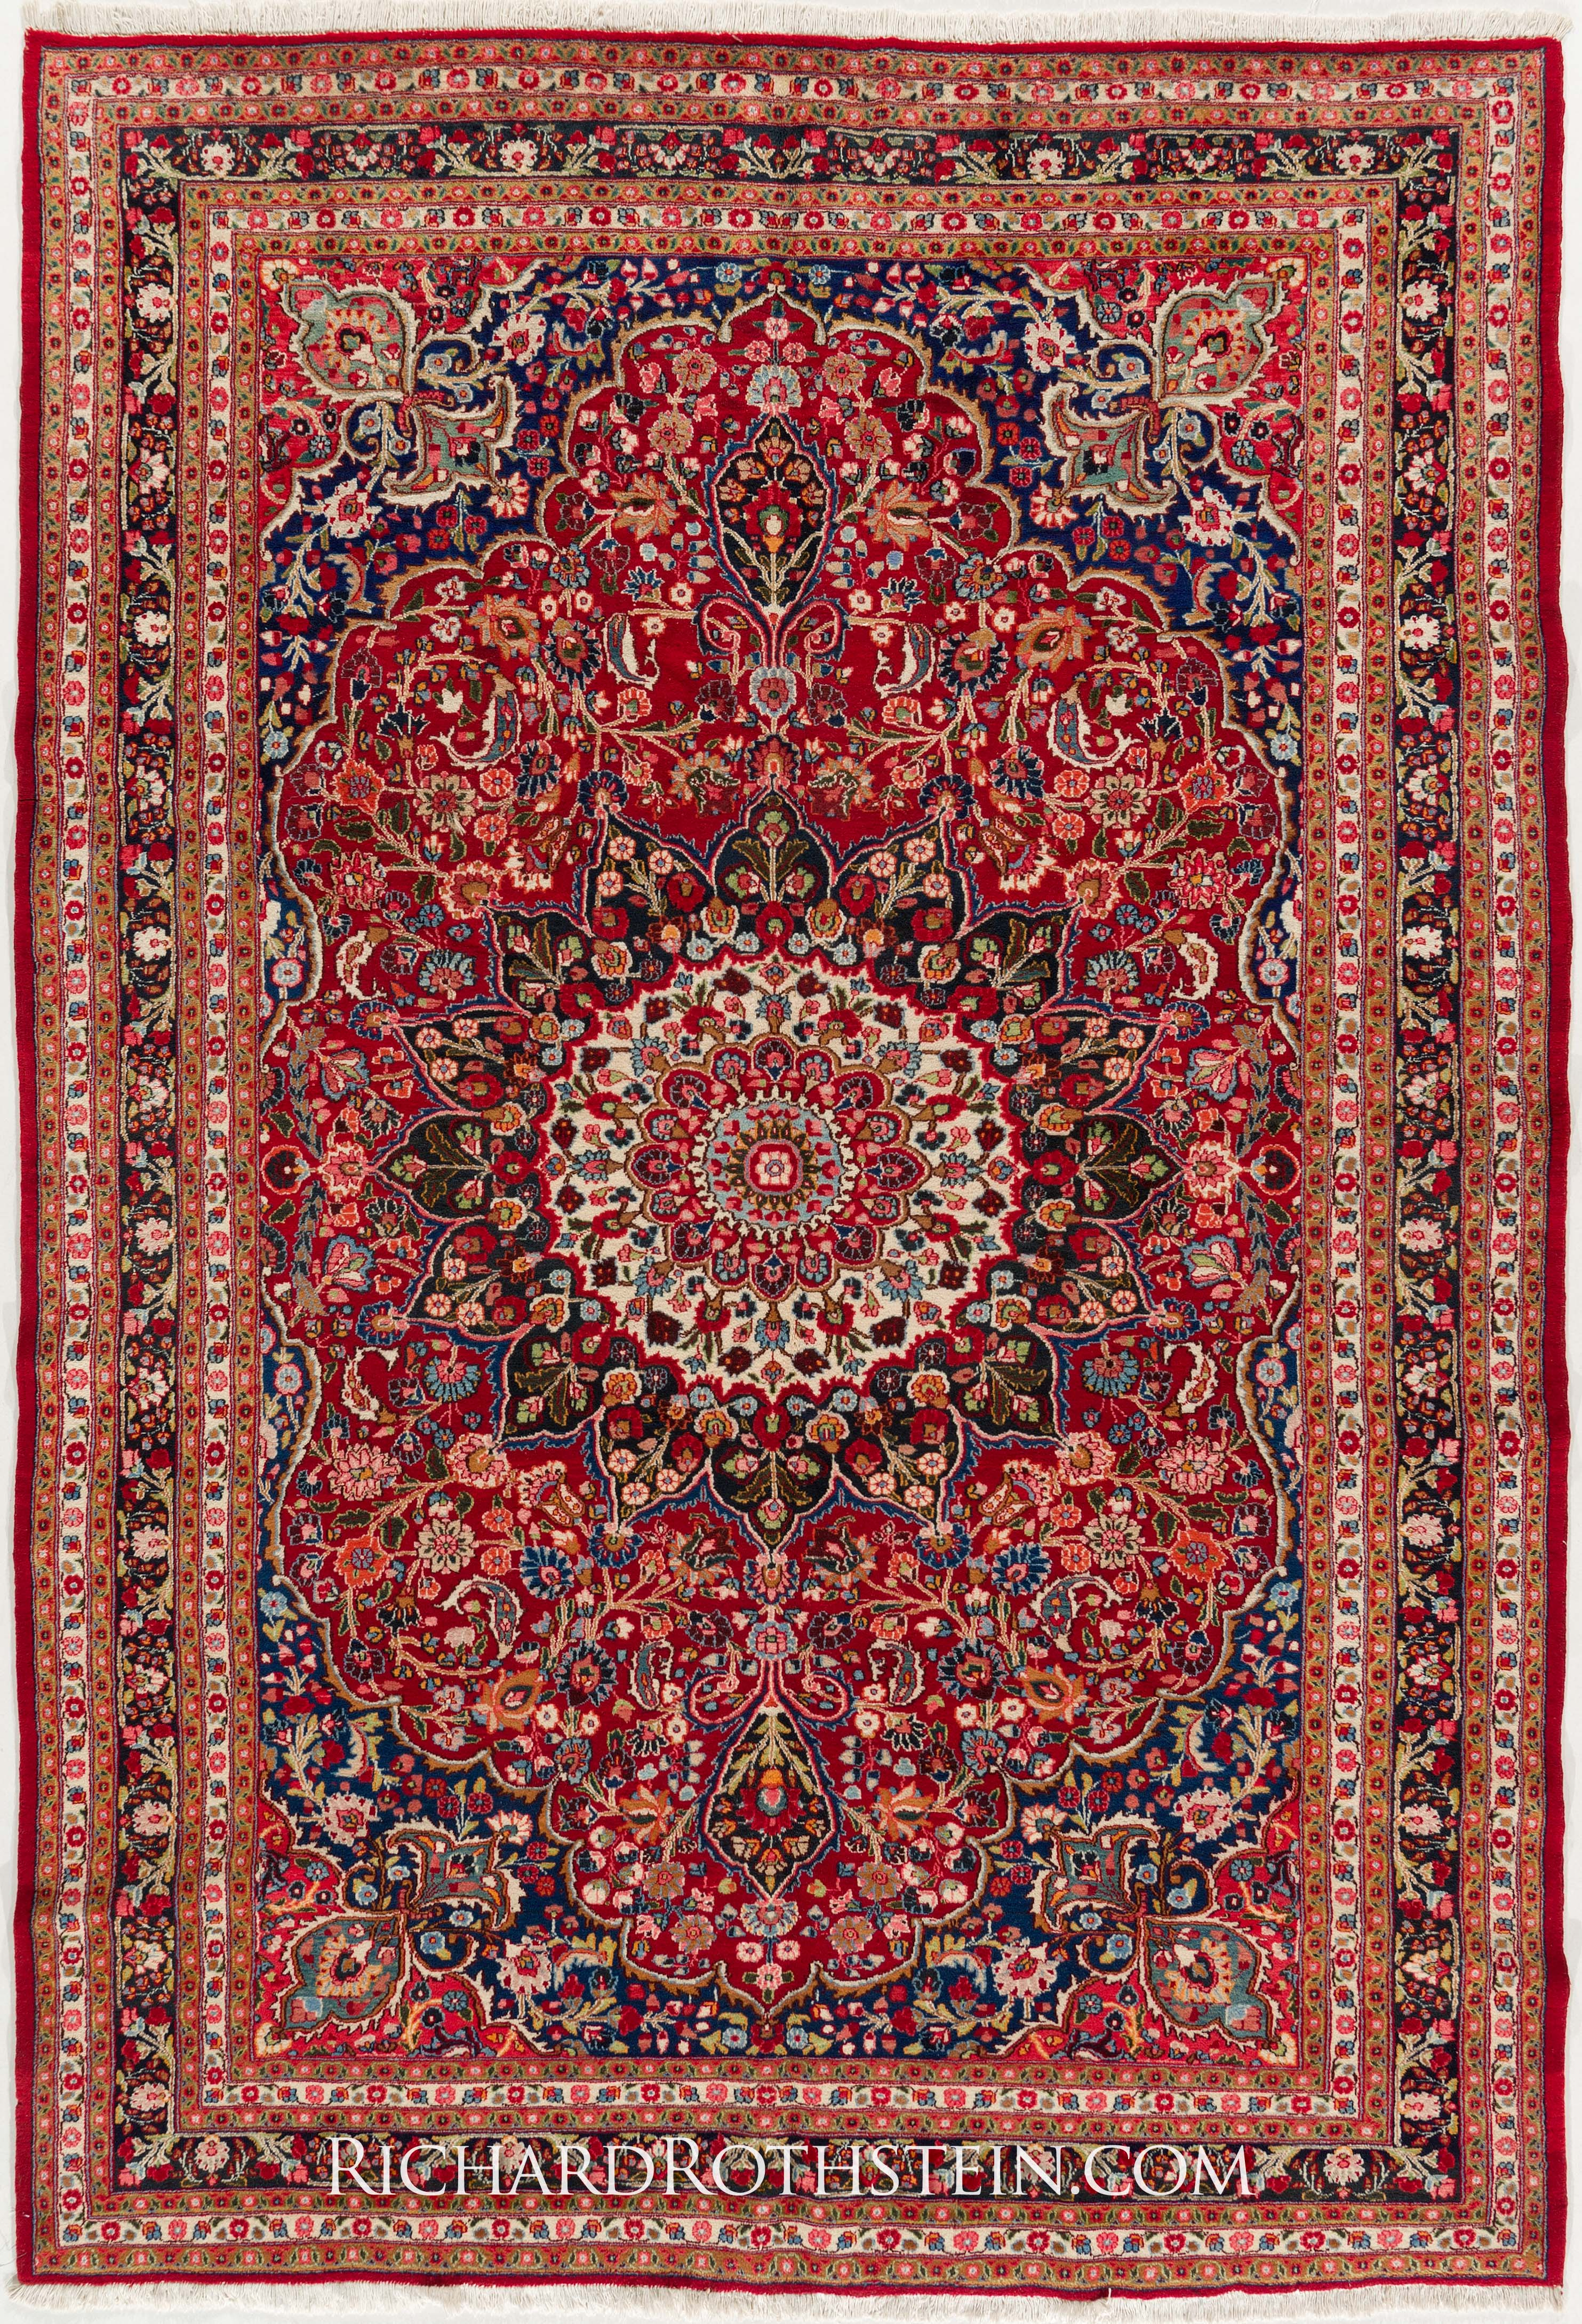 oriental rugs - artistry and craftsman is just beautiful. artwork for your TIOJWNF